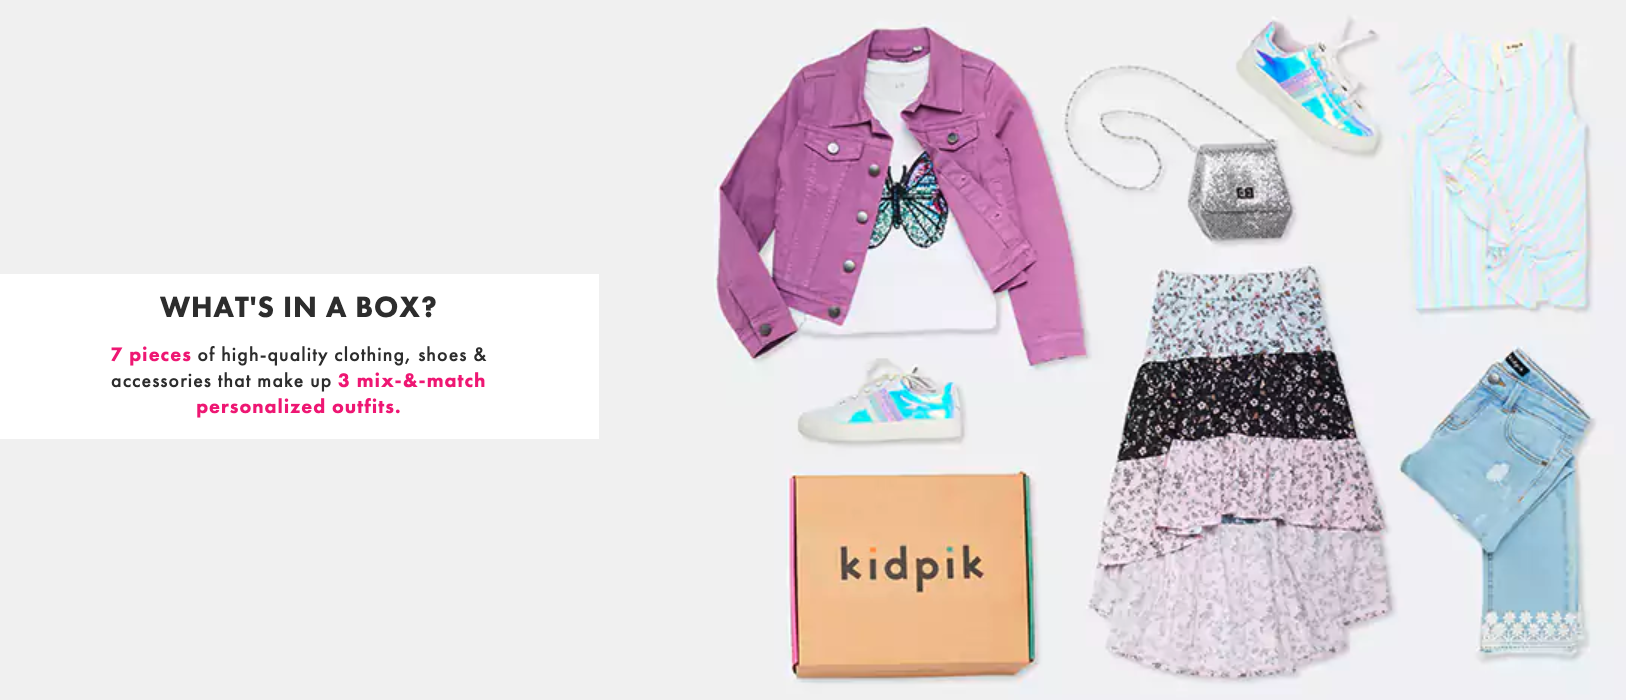 Image showing all the clothes that come in a Kidpik box: coat, shoes, purse, dress, blouse, jeans